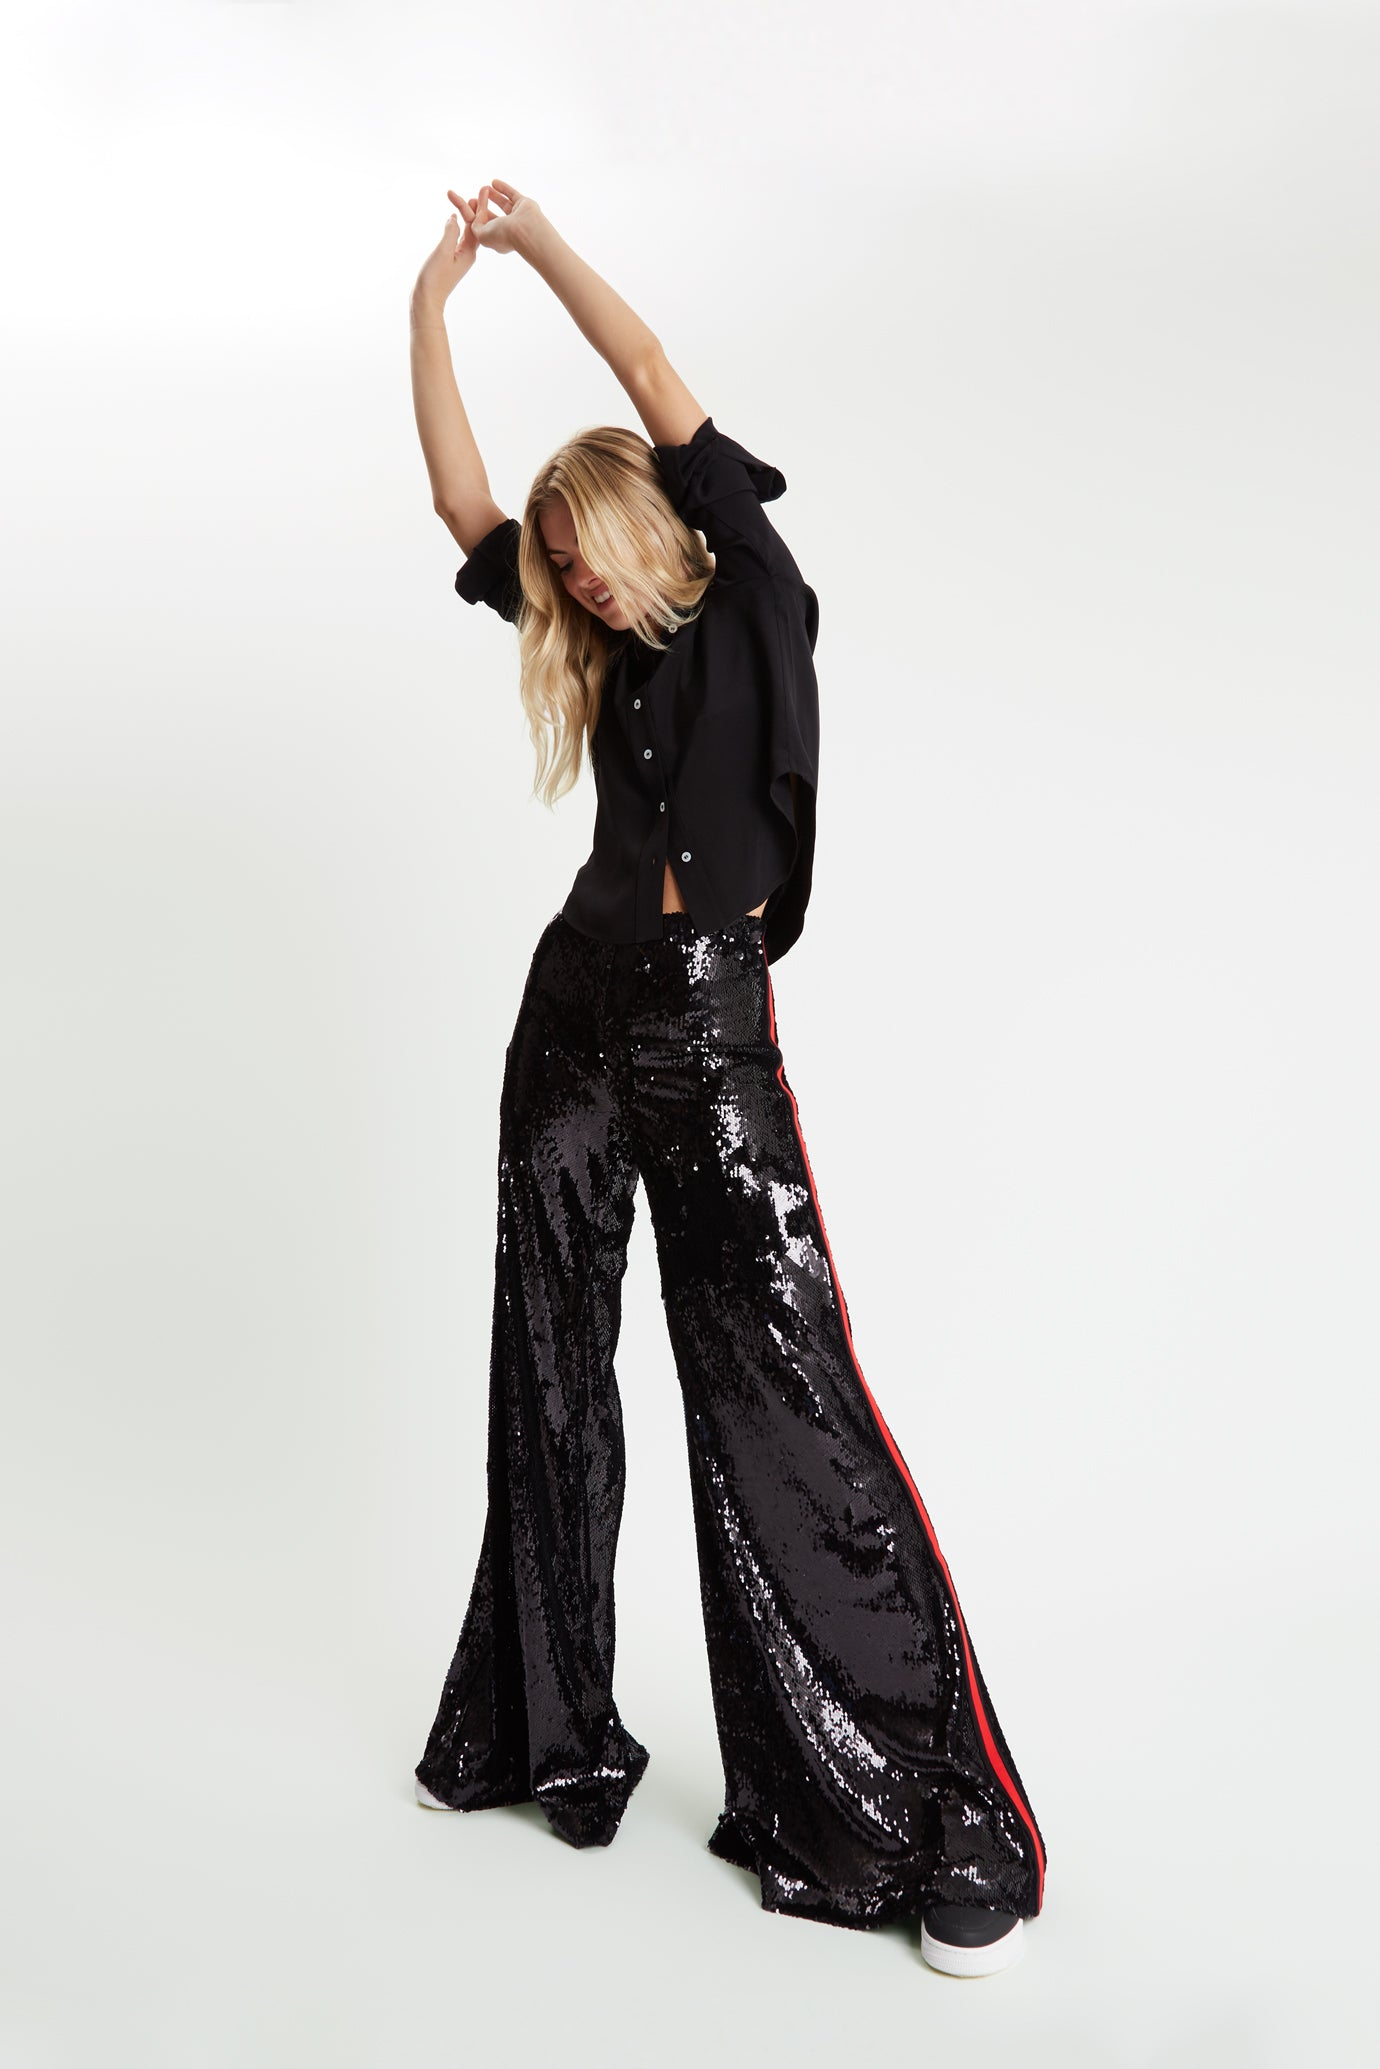 The Sequin Flare - Black & Red - SERENA BUTE